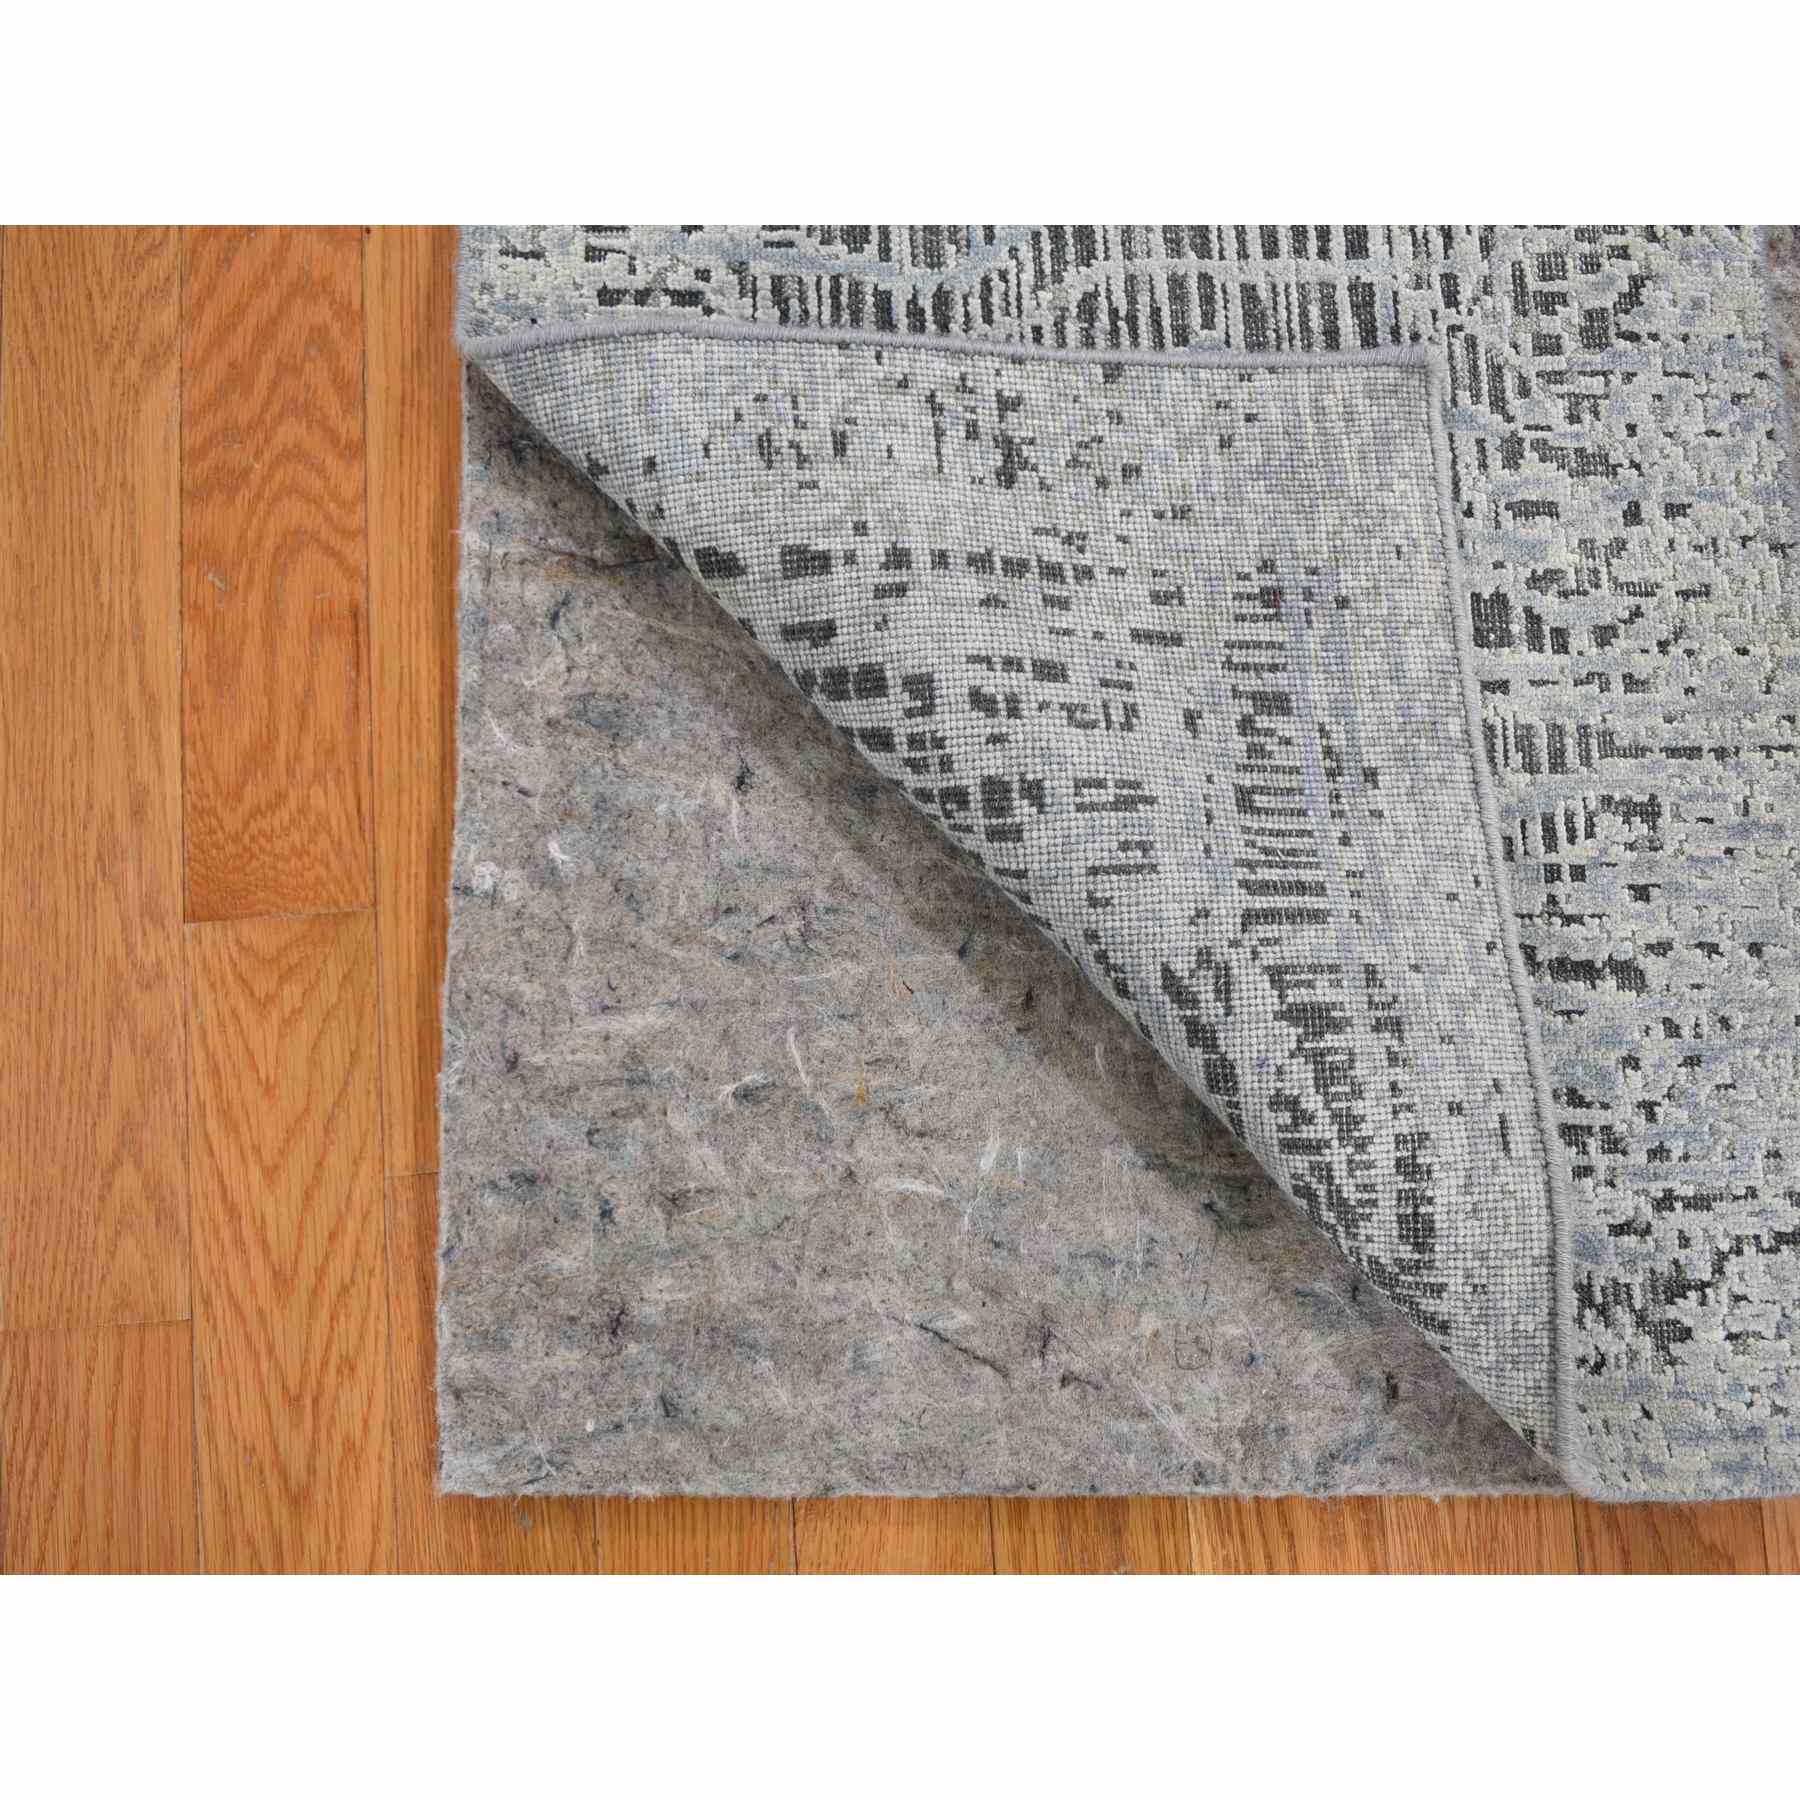 2'x3' THE LOST BRANCHES, Sampler Silk With Textured Wool Hand Knotted Oriental Rug